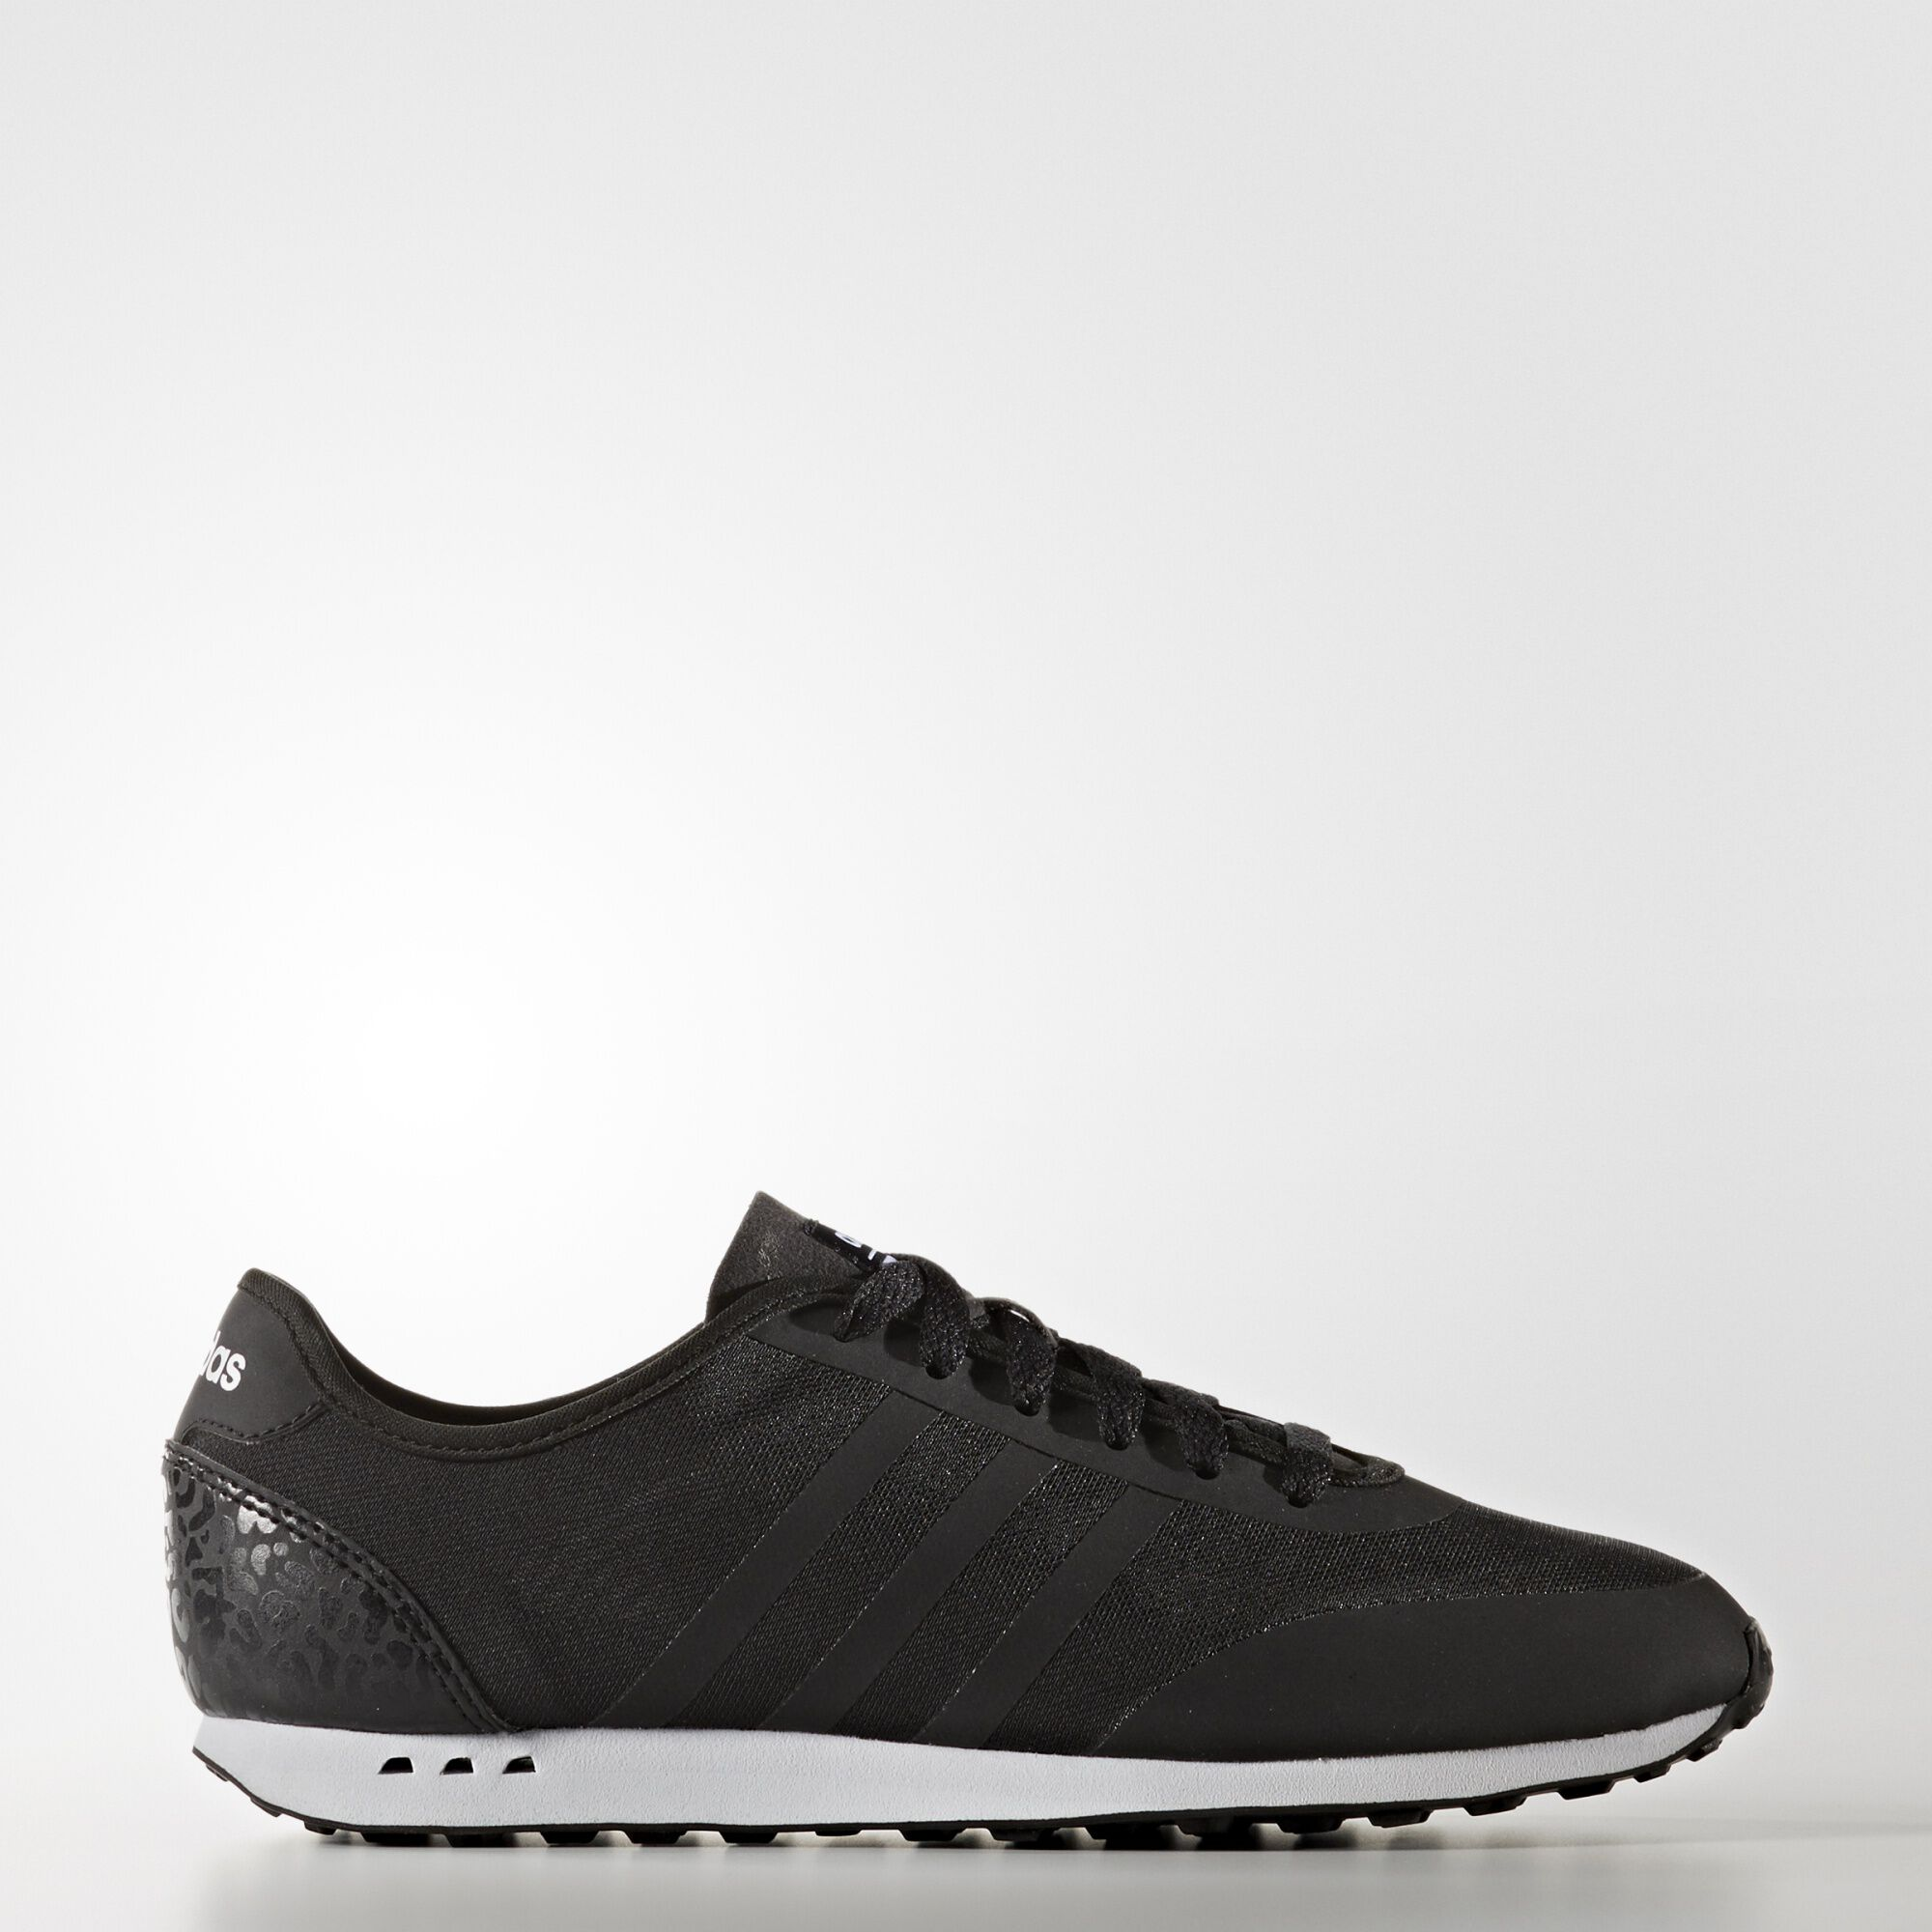 Adidas Neo Lite Racer Womens Reviews